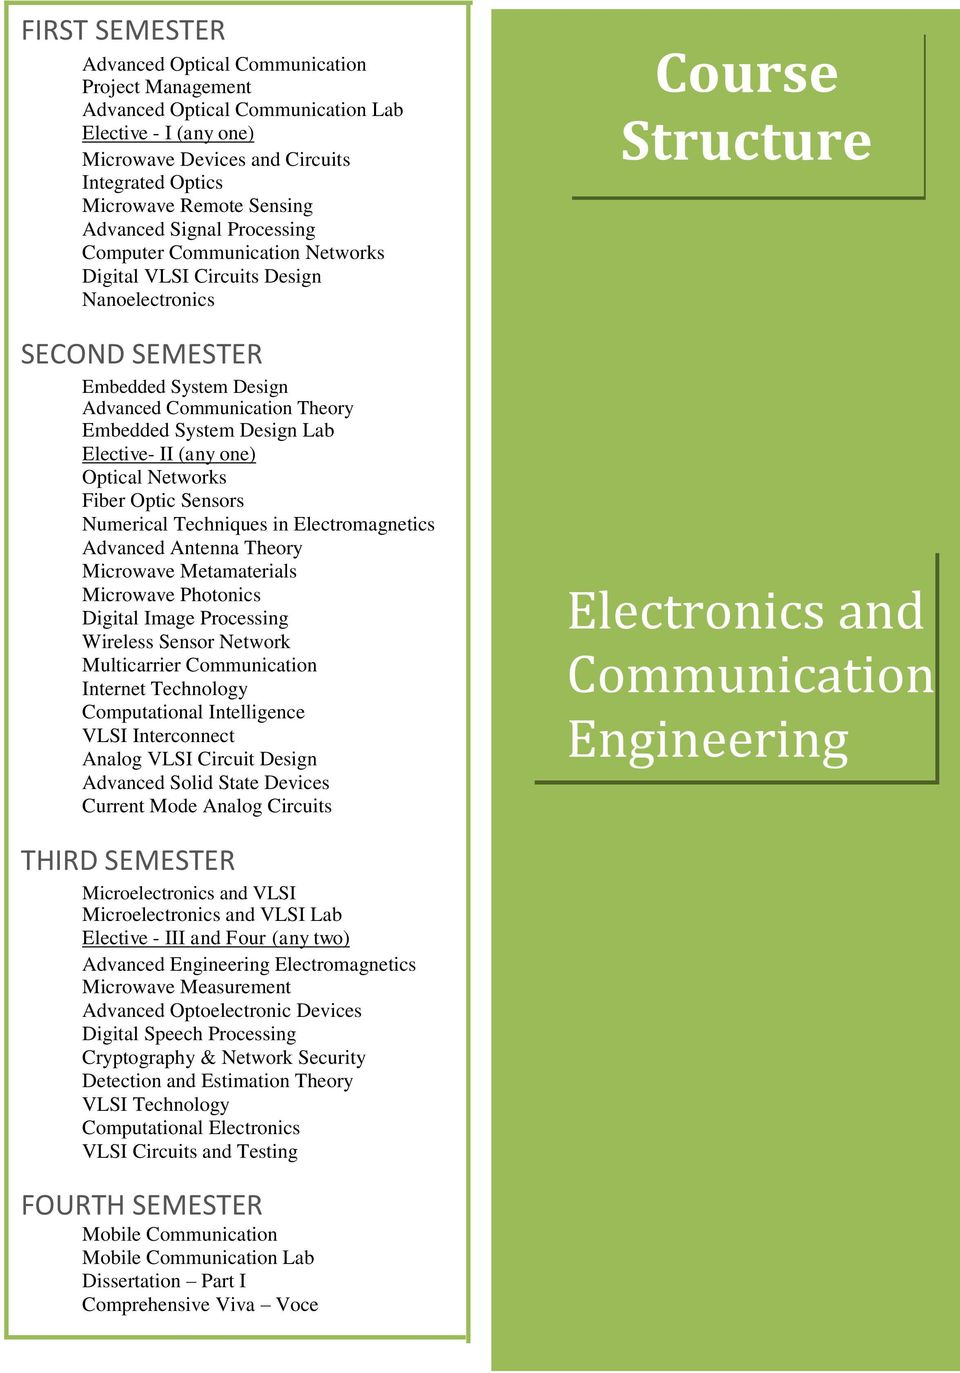 Elective- II (any one) Optical Networks Fiber Optic Sensors Numerical Techniques in Electromagnetics Advanced Antenna Theory Microwave Metamaterials Microwave Photonics Digital Image Processing